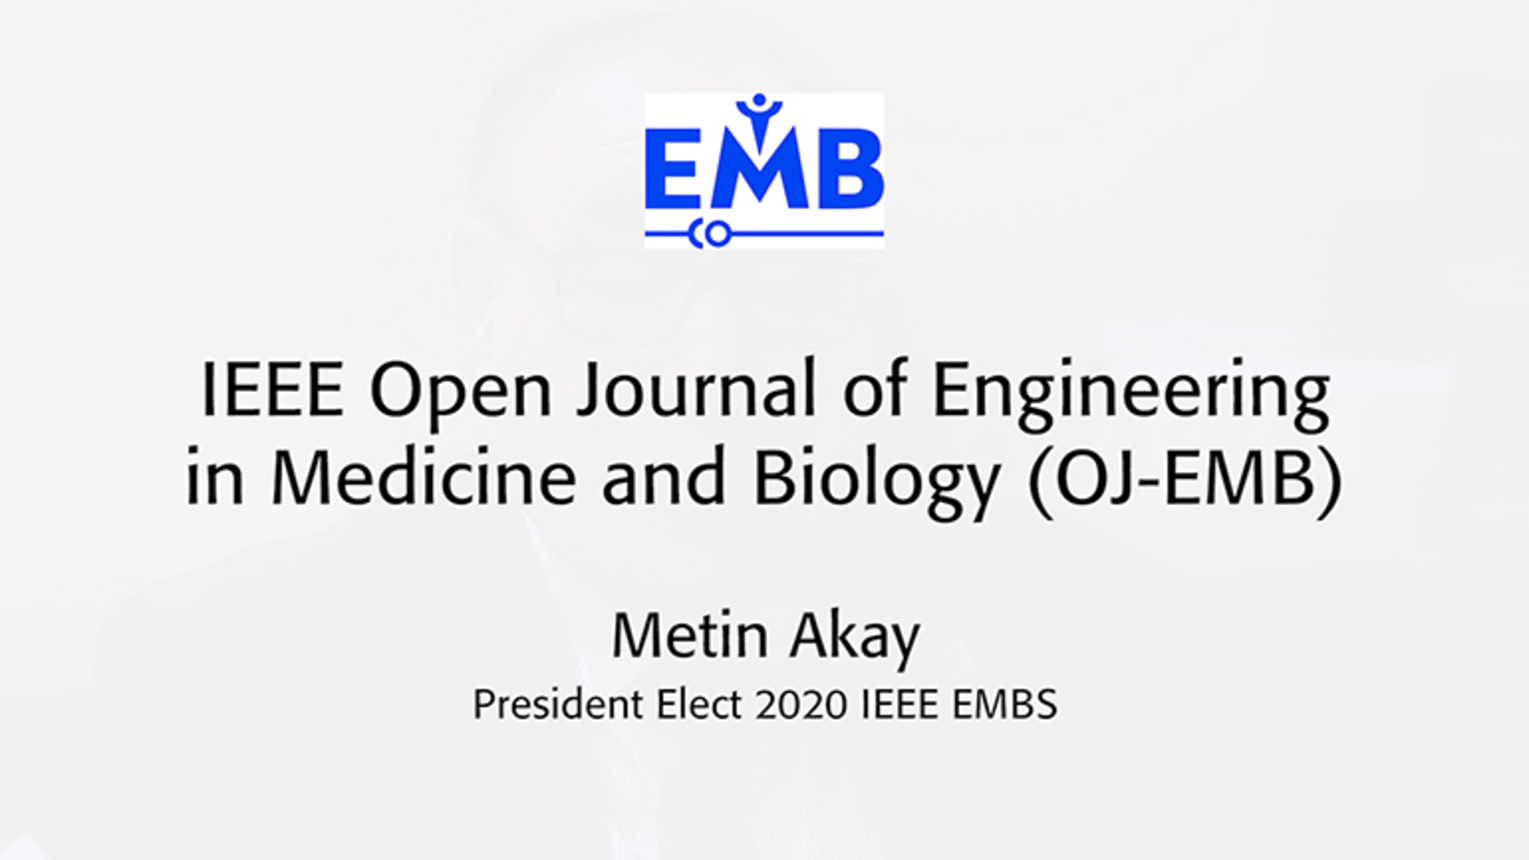 OJ-EMB: Why Open Access-Metin Akay